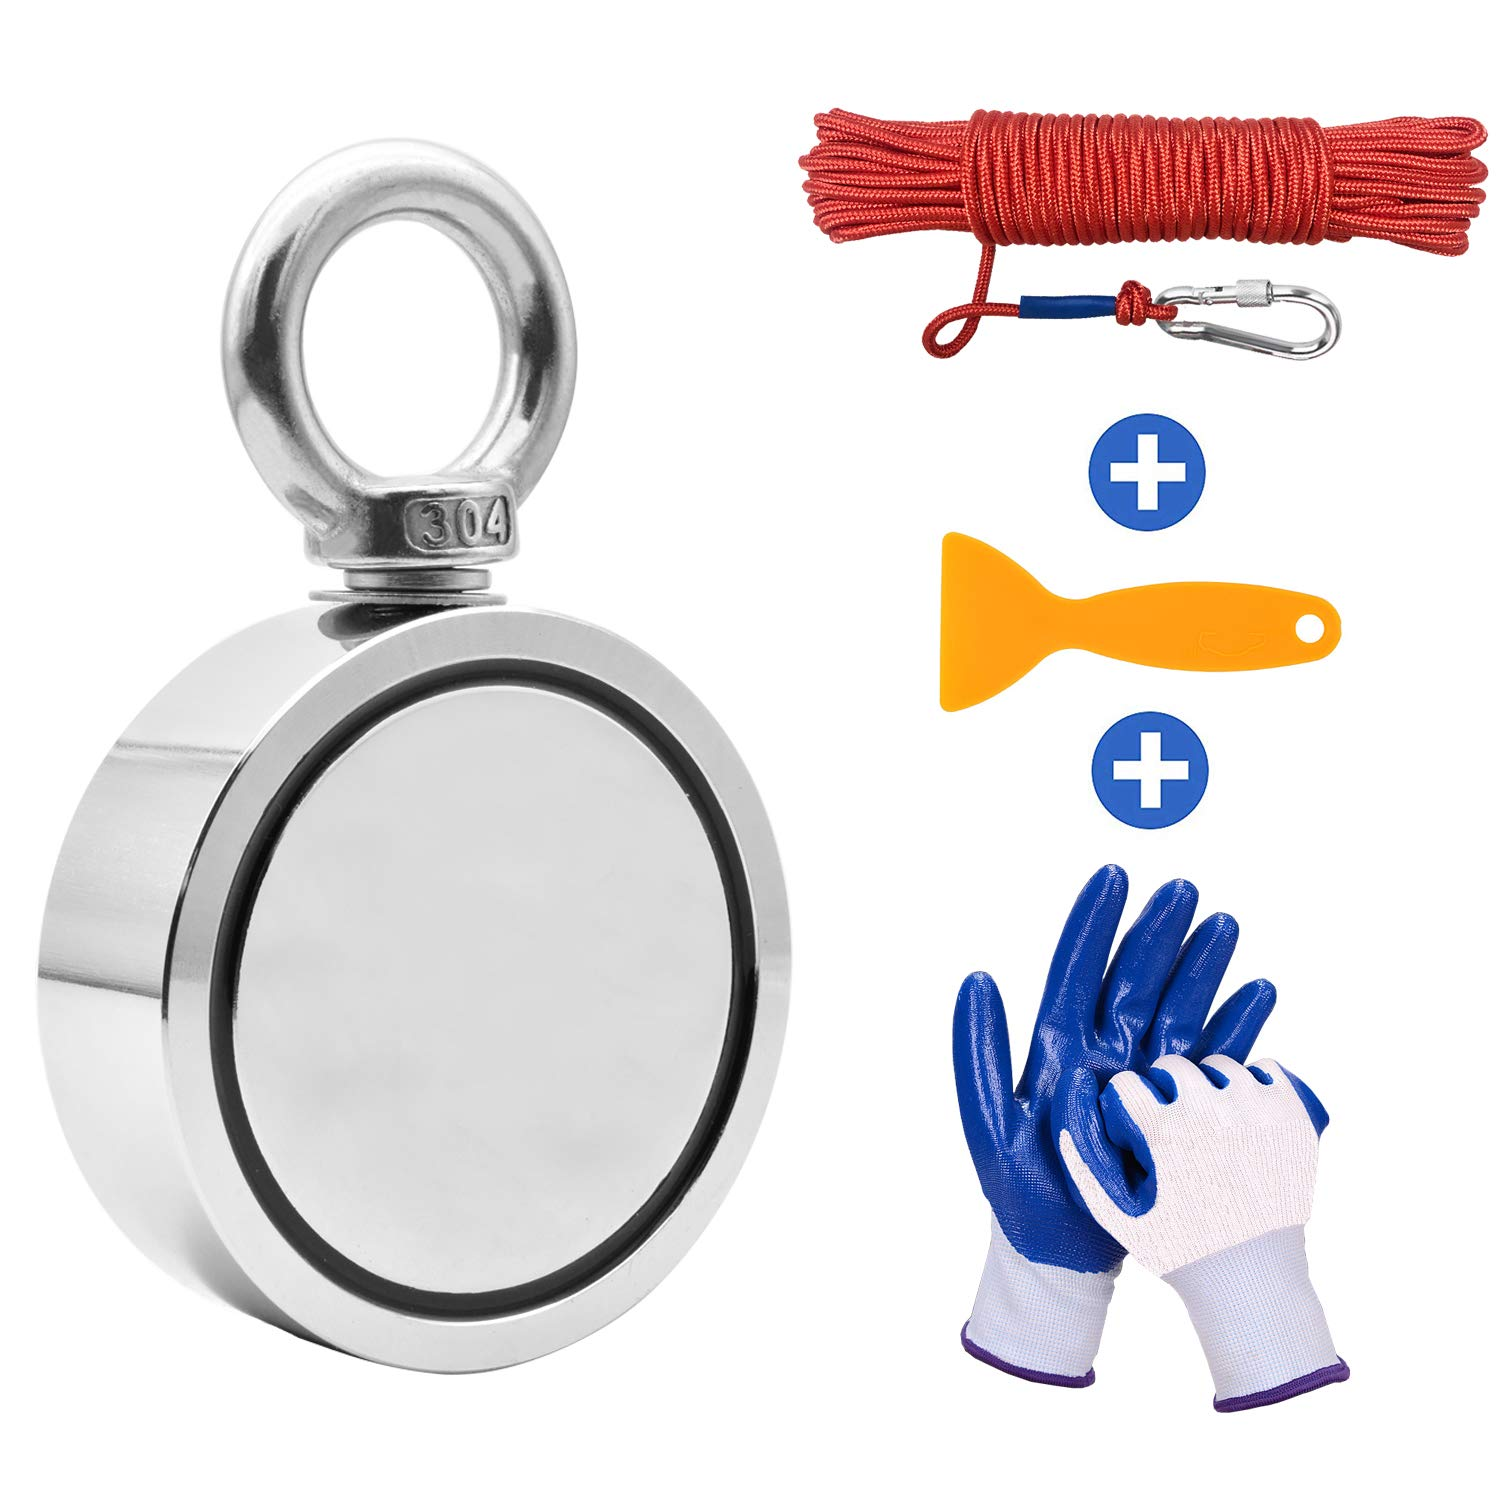 Fishing Magnet with Rope Glove Set, 661LB(300KG) Pulling Force Super Strong Double Sided Neodymium Magnet with Nylon Rope x 66ft & Carabiner for Magnet Fishing and Retrieving in River, Diameter 60mm by HAIY